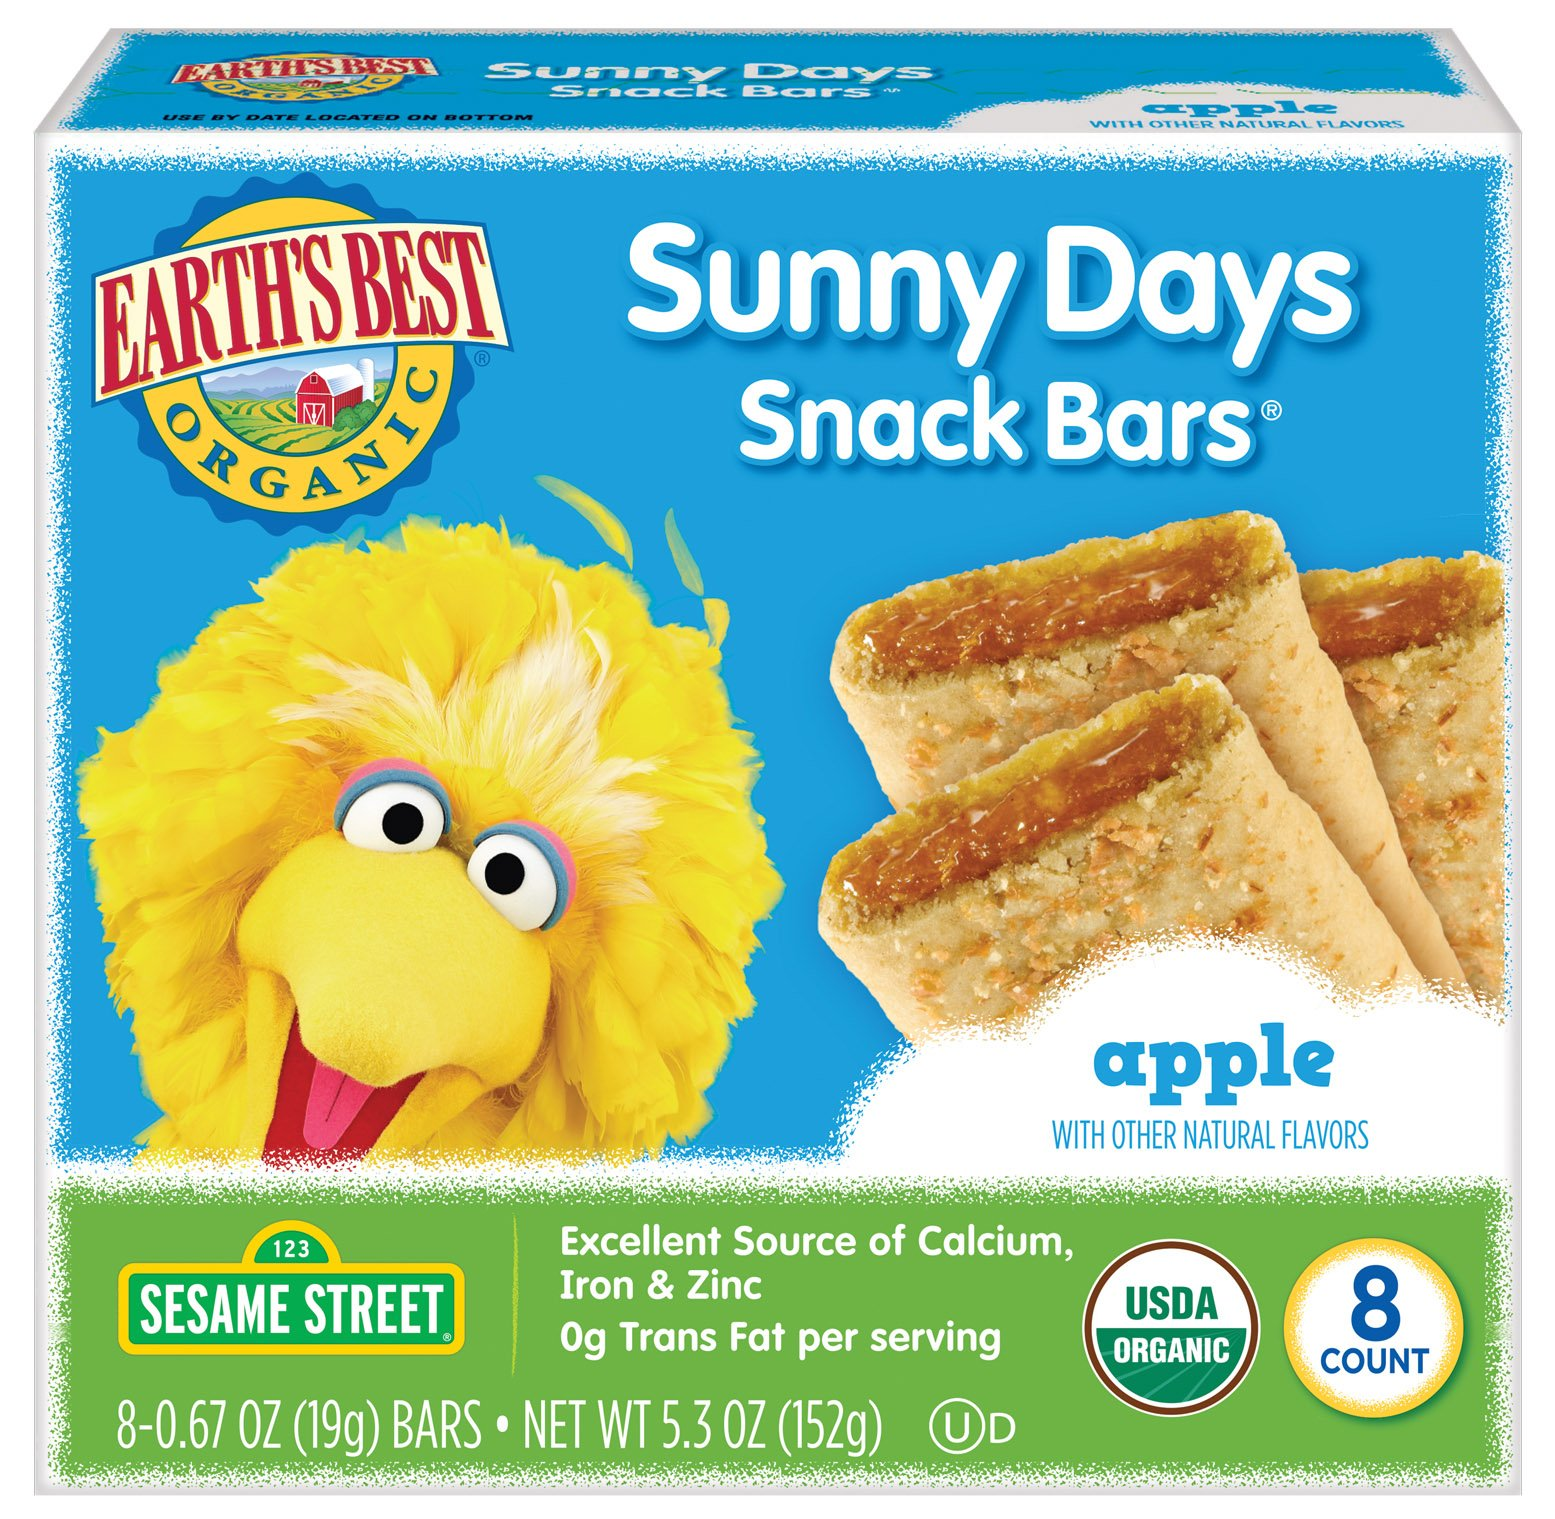 Earth's Best Organic Sunny Day Toddler Snack Bars with Cereal Crust, Made With Real Apples - 8 Count (Pack of 6) by Earth's Best (Image #1)